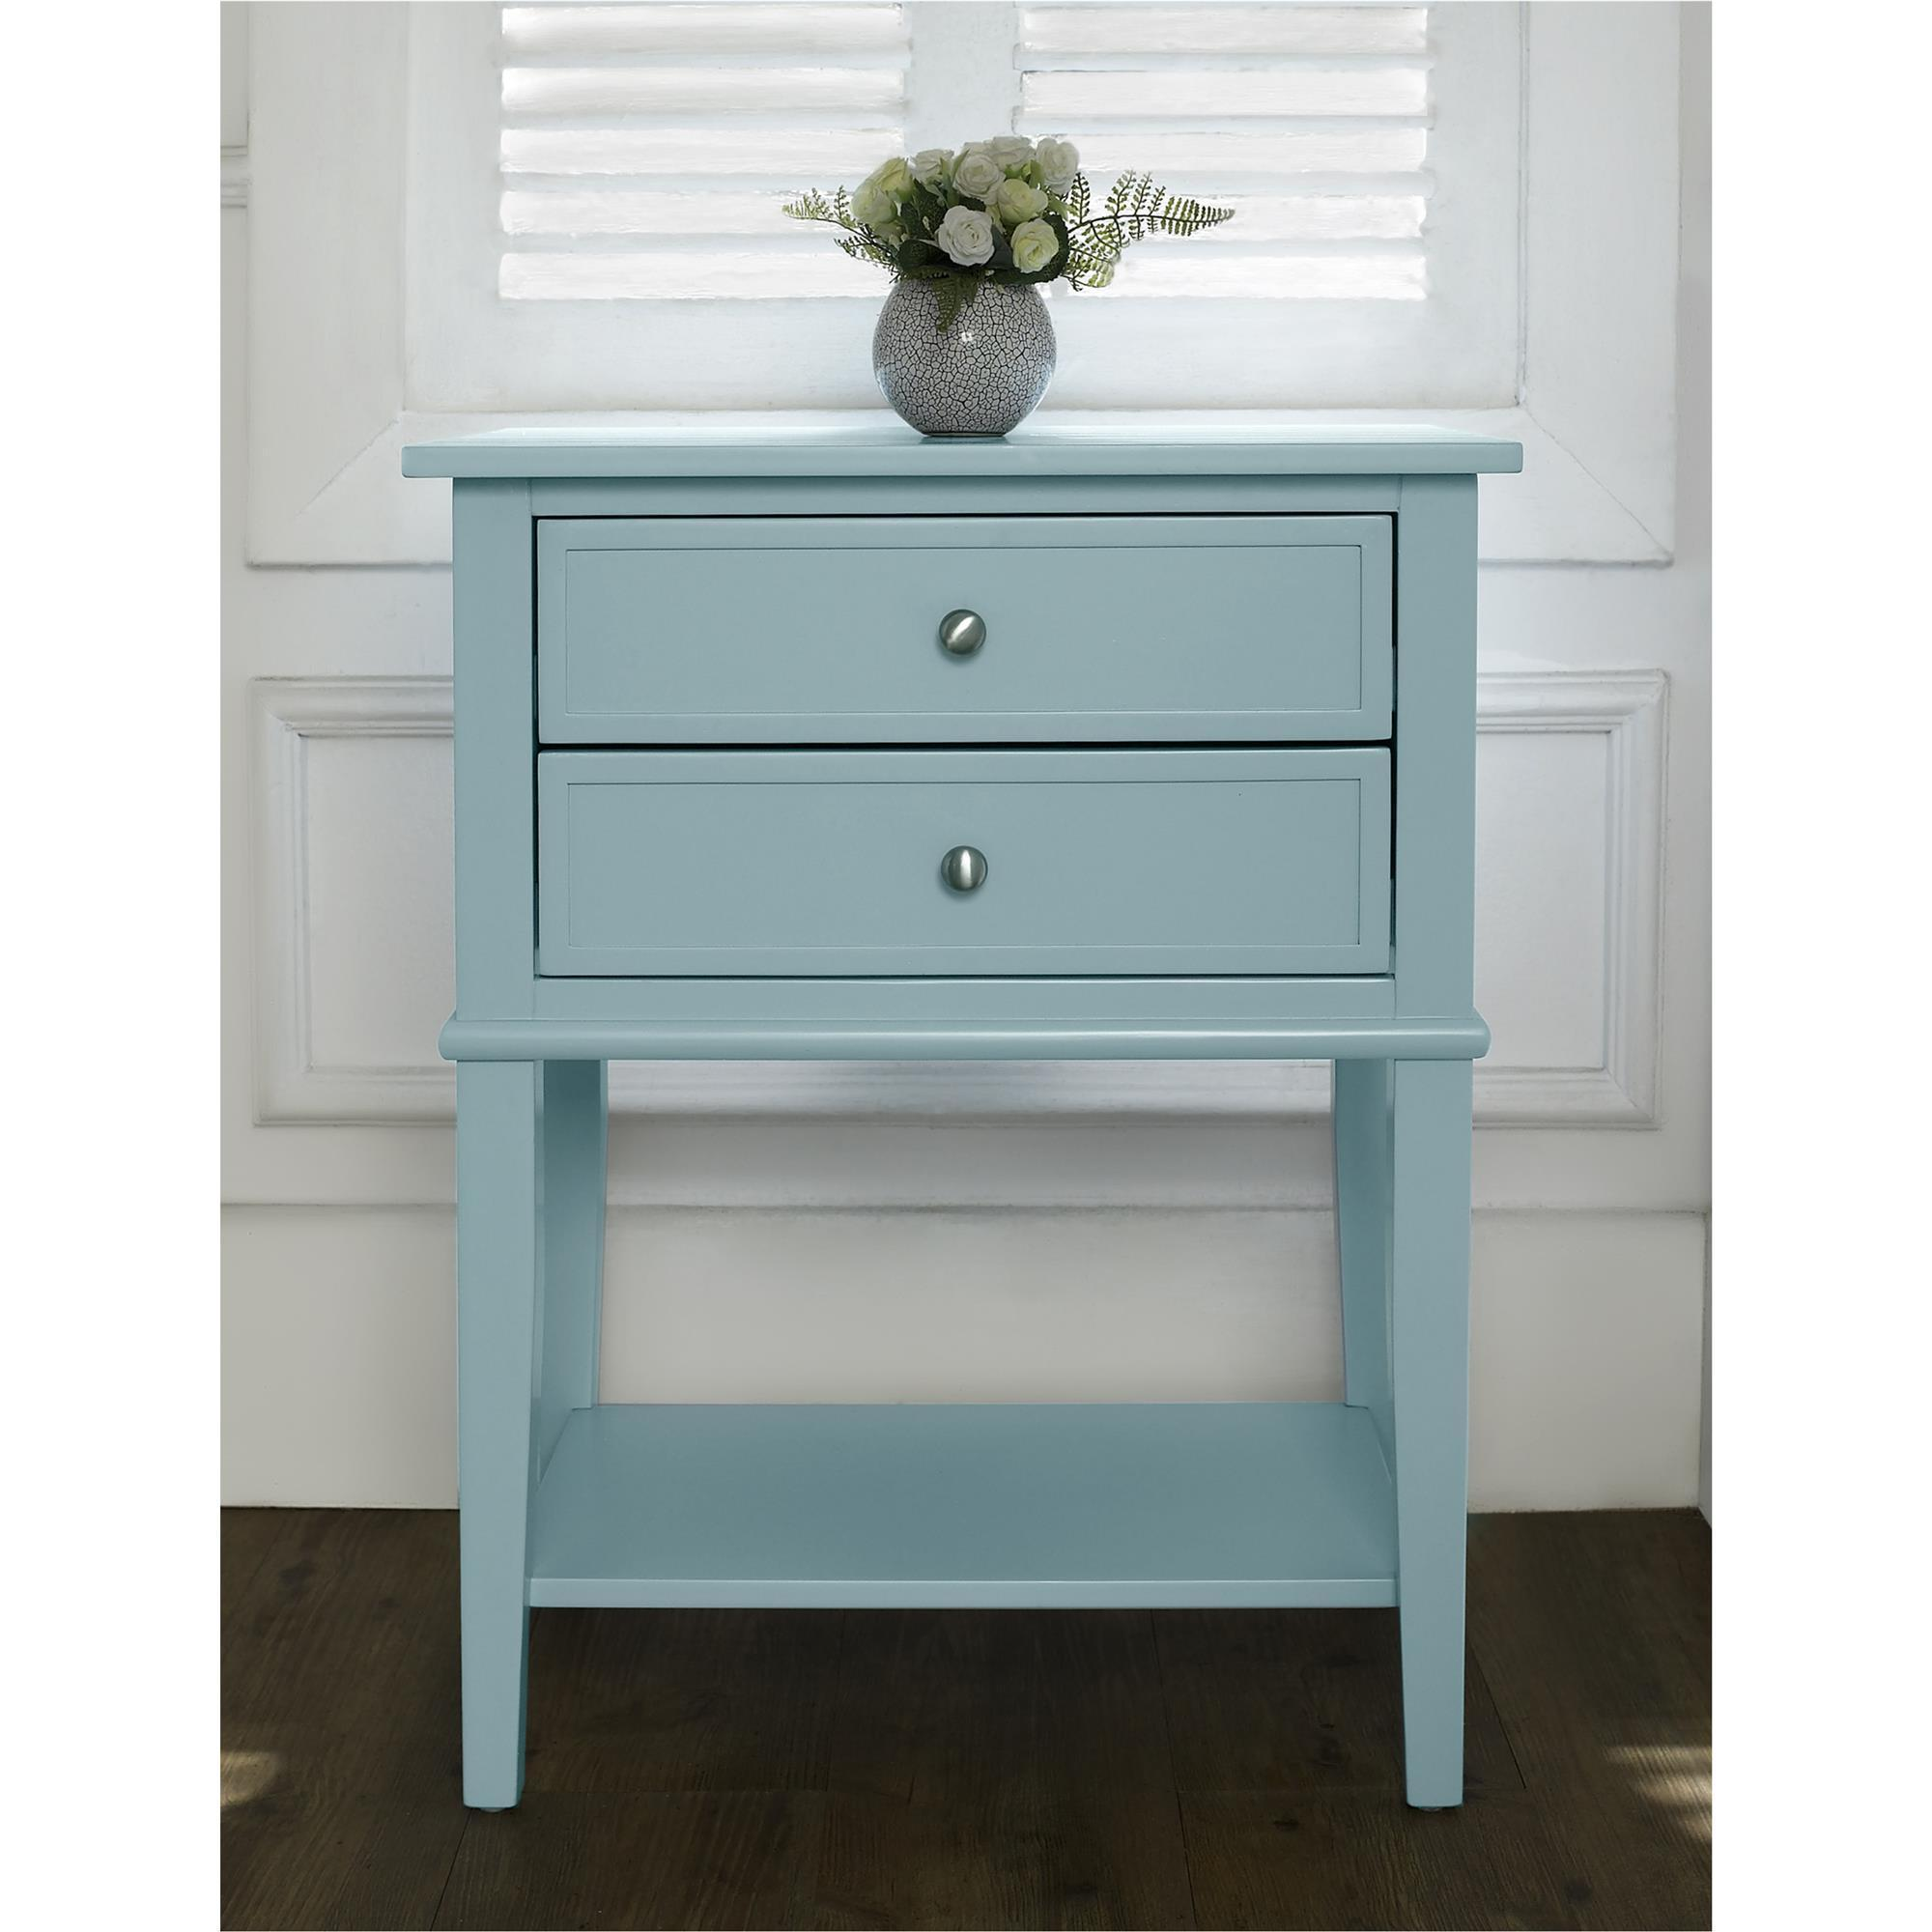 ameriwood home transitional franklin accent table with two drawers chest free shipping today bath and beyond registry login luau cupcakes mid century classic furniture ashley